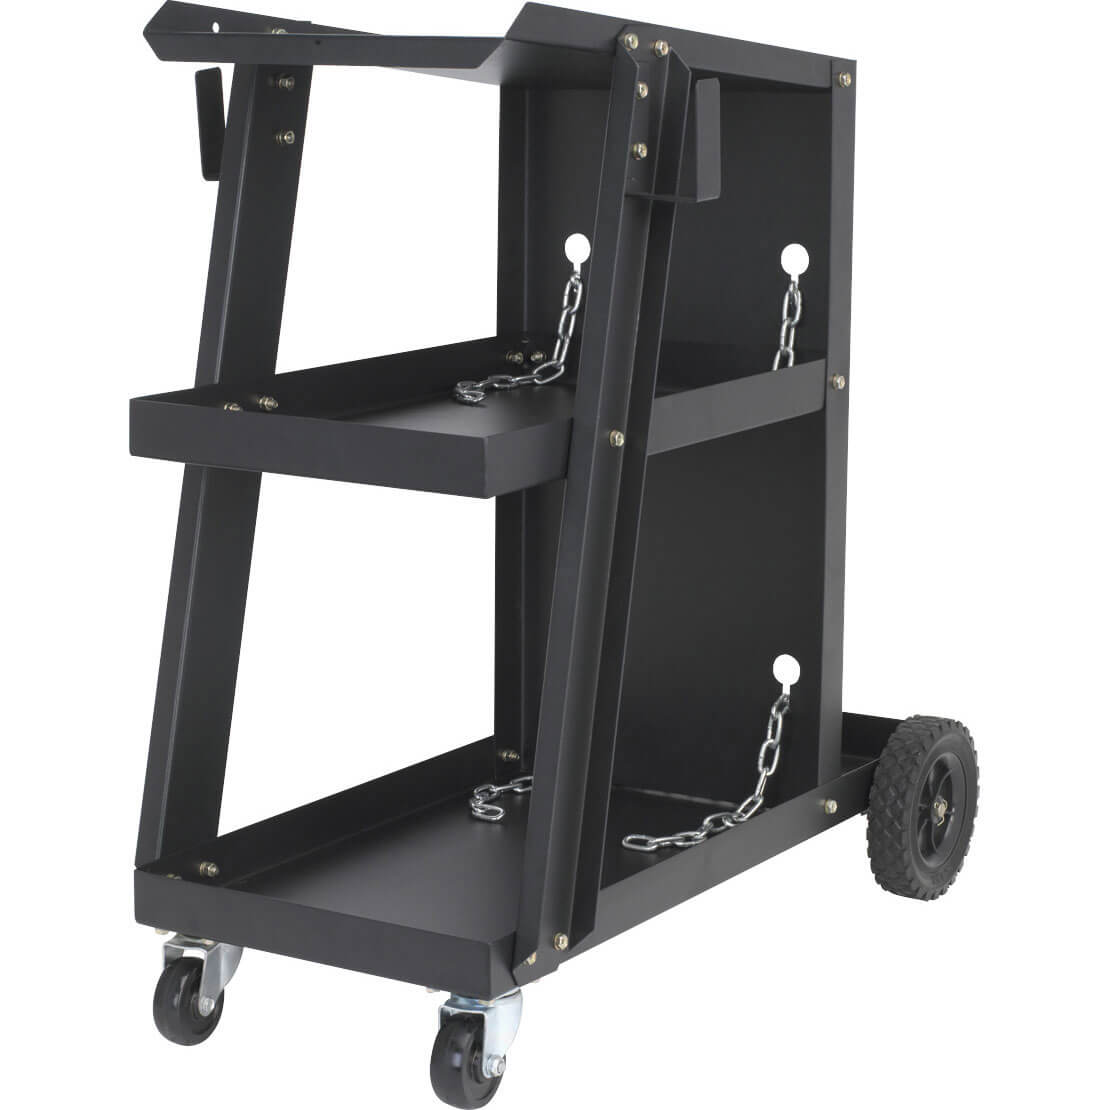 Image of Sealey Universal Trolley for MIG Welders